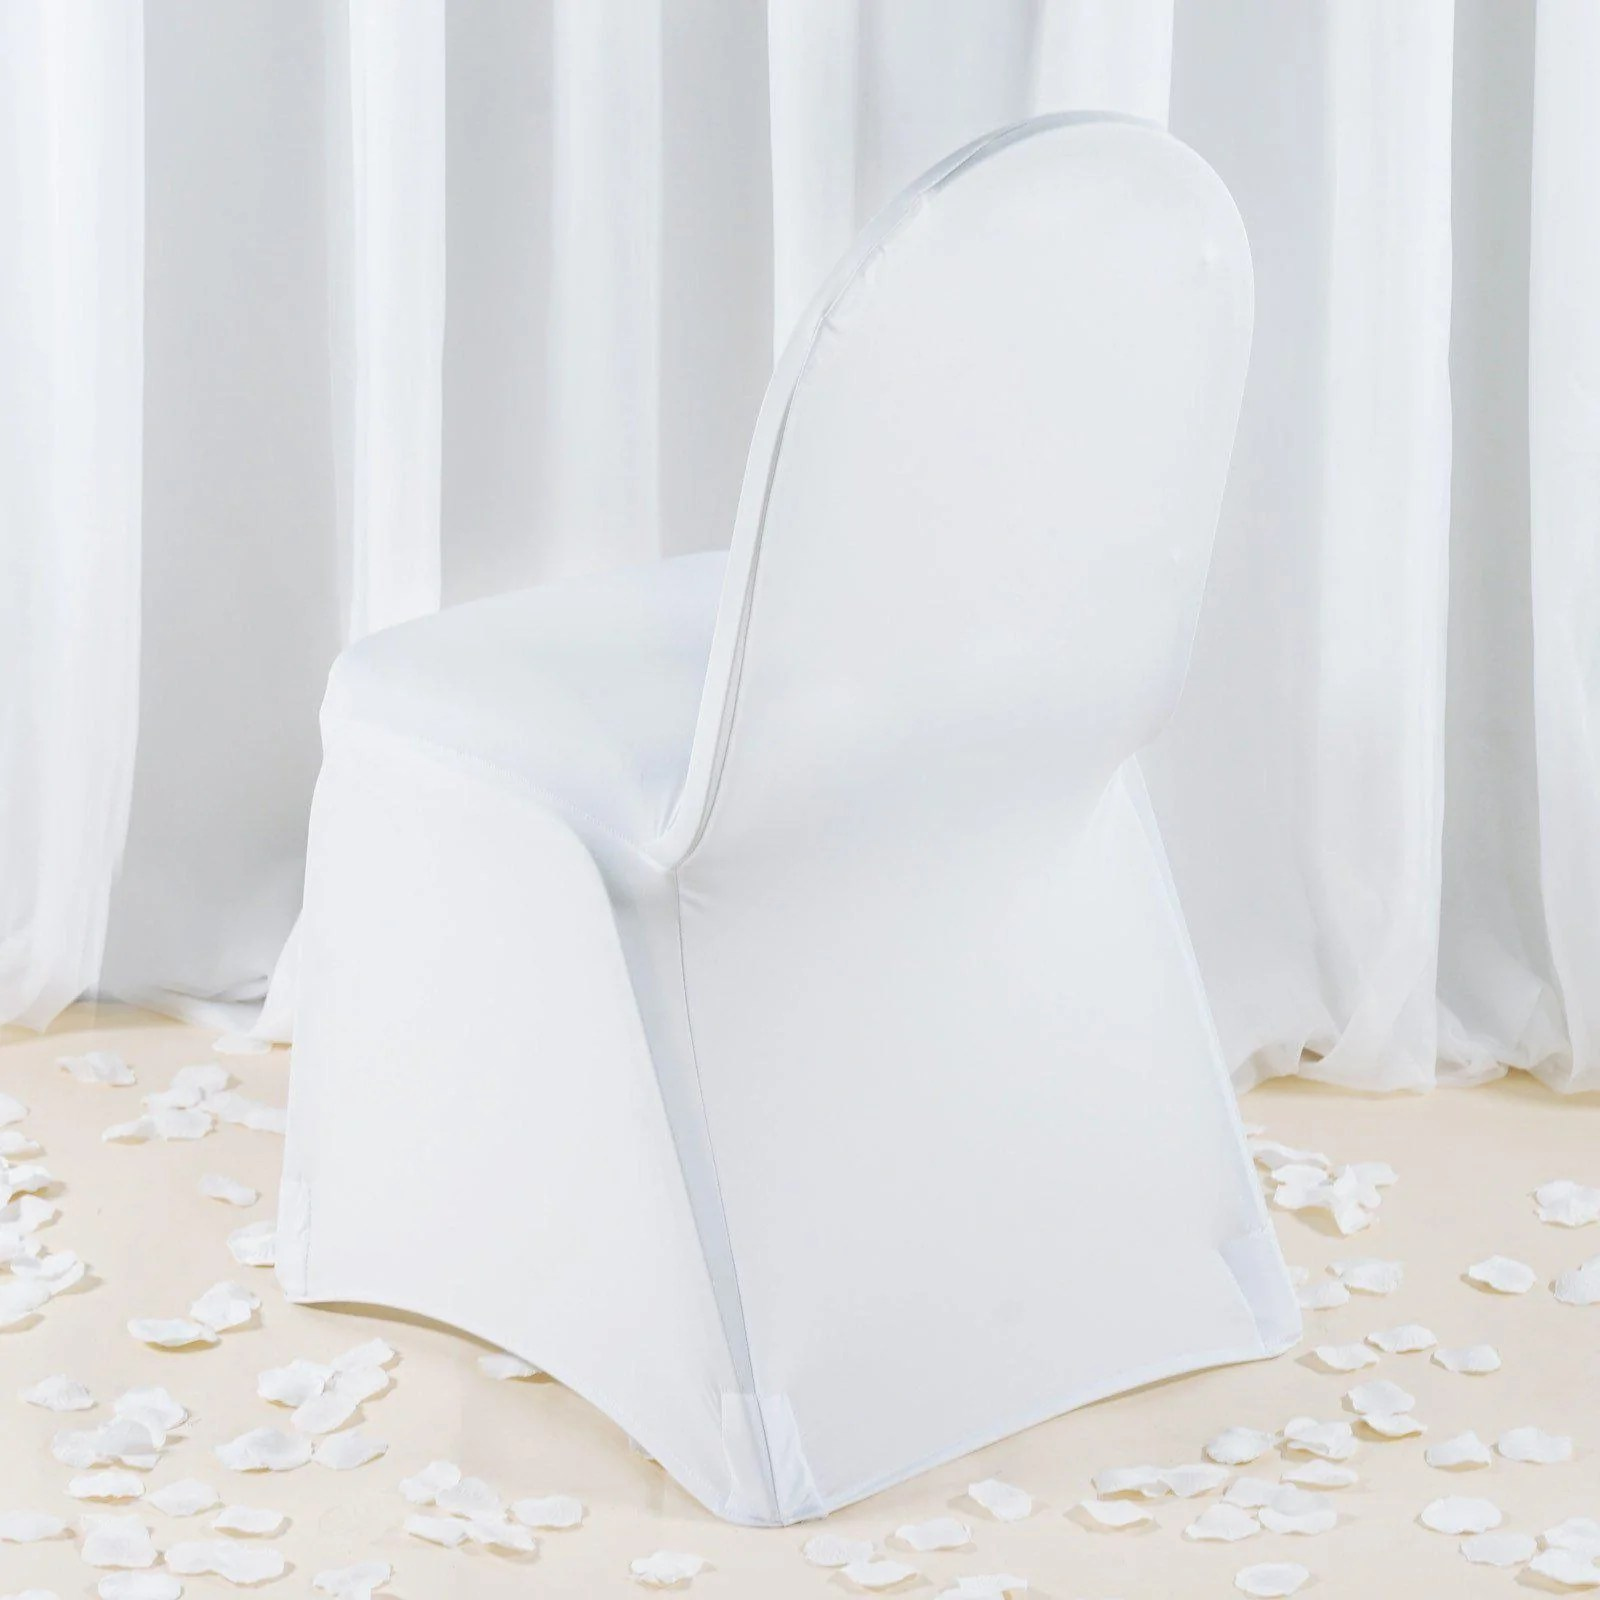 spandex banquet chair covers for sale herman miller aeron amazon white premium tablecloths factory cover